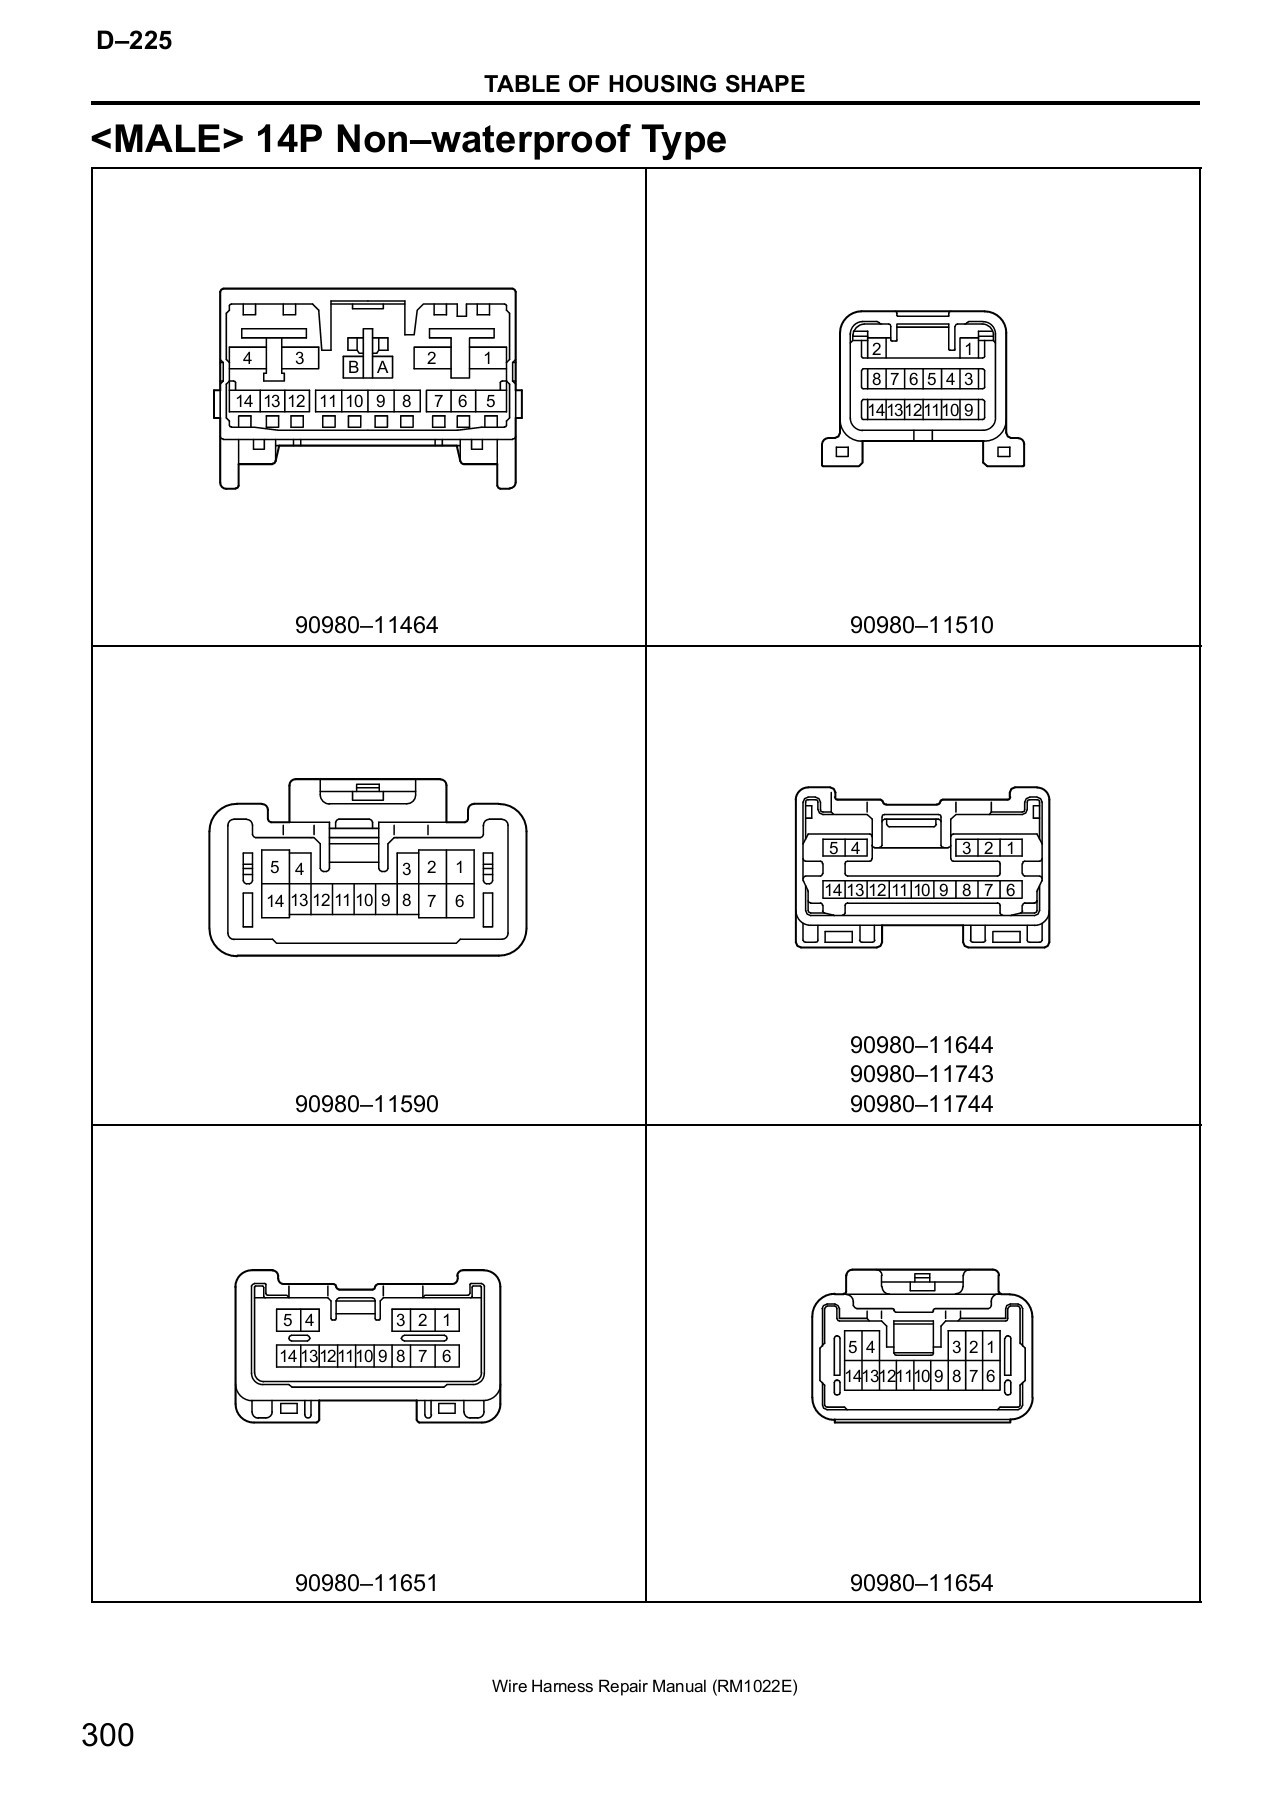 medium resolution of toyota wiring repair manual pdfdrive com pages 301 350 text version fliphtml5